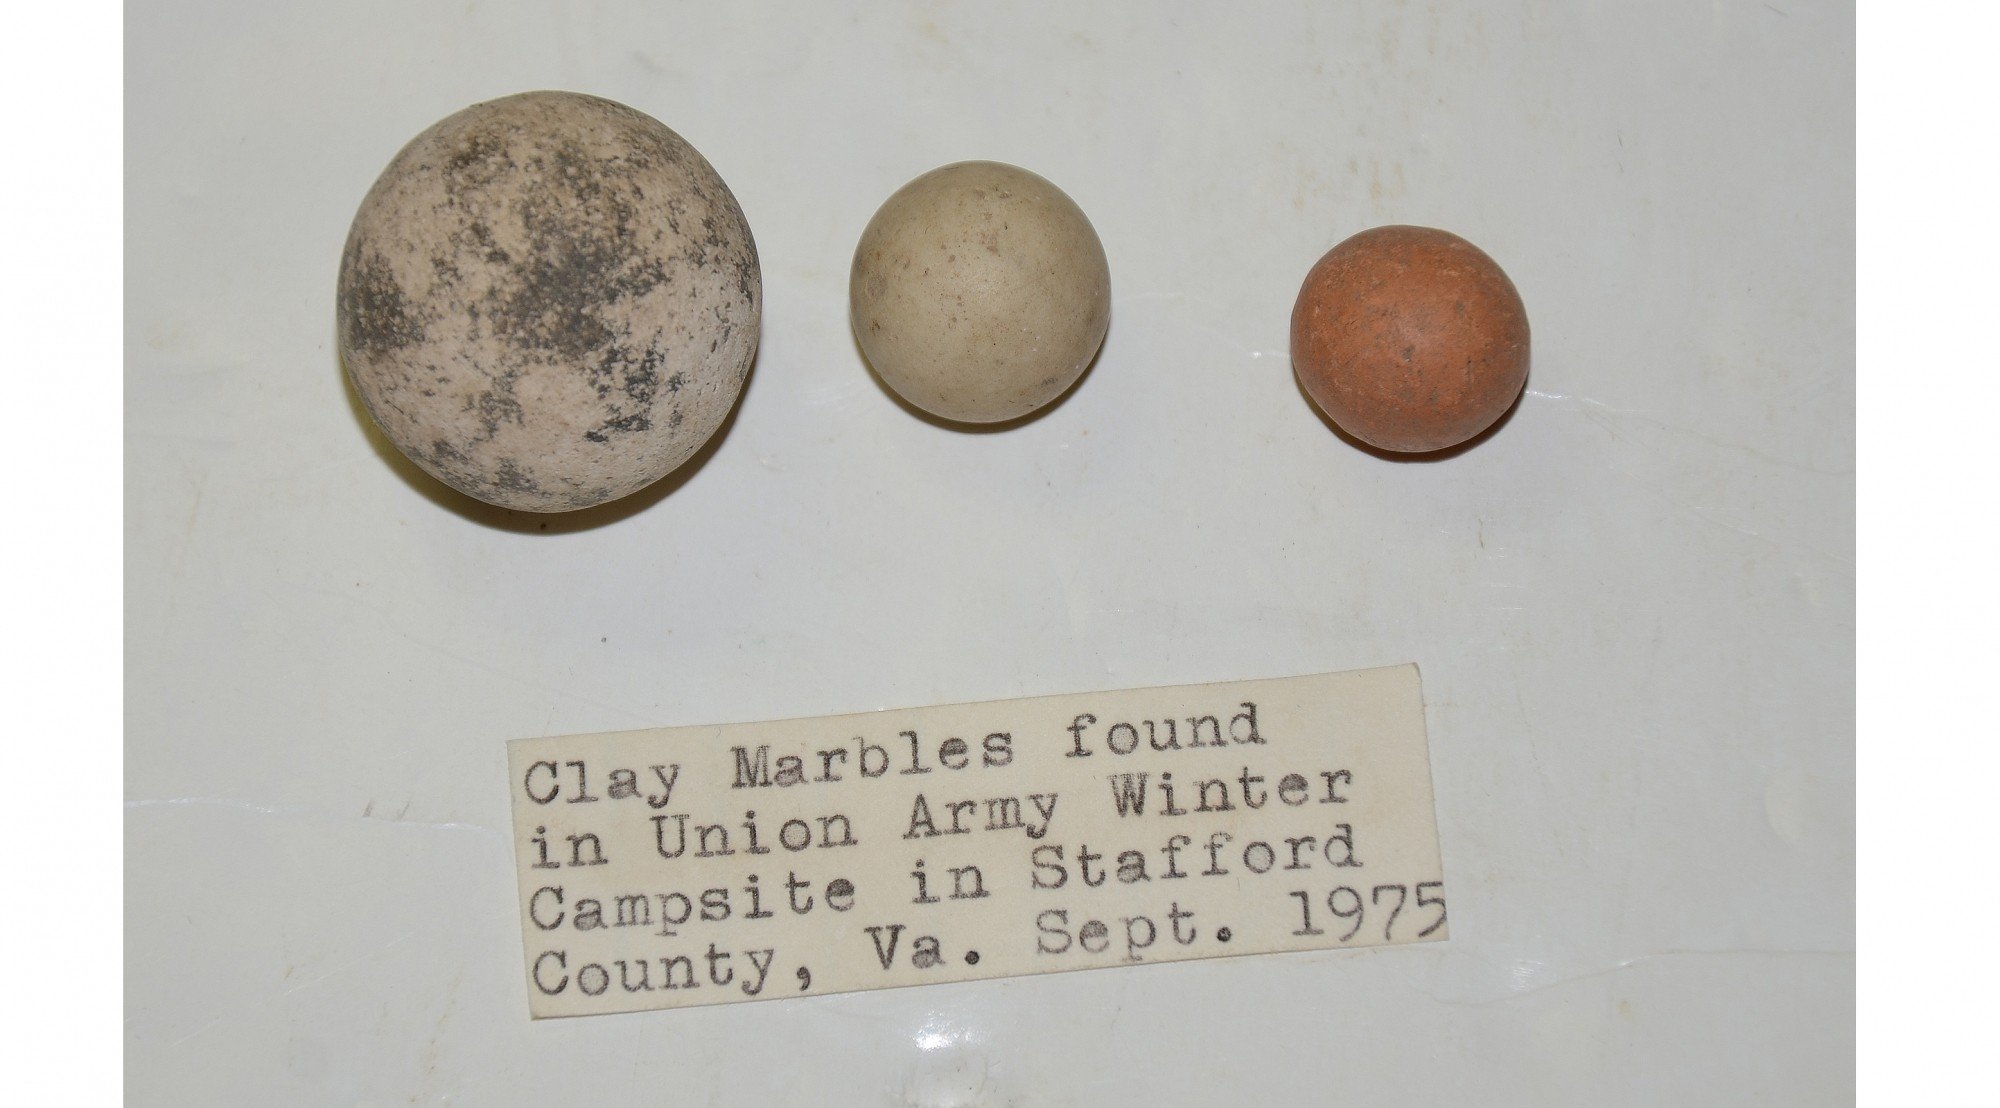 CLAY MARBLES FROM UNION ARMY CAMP